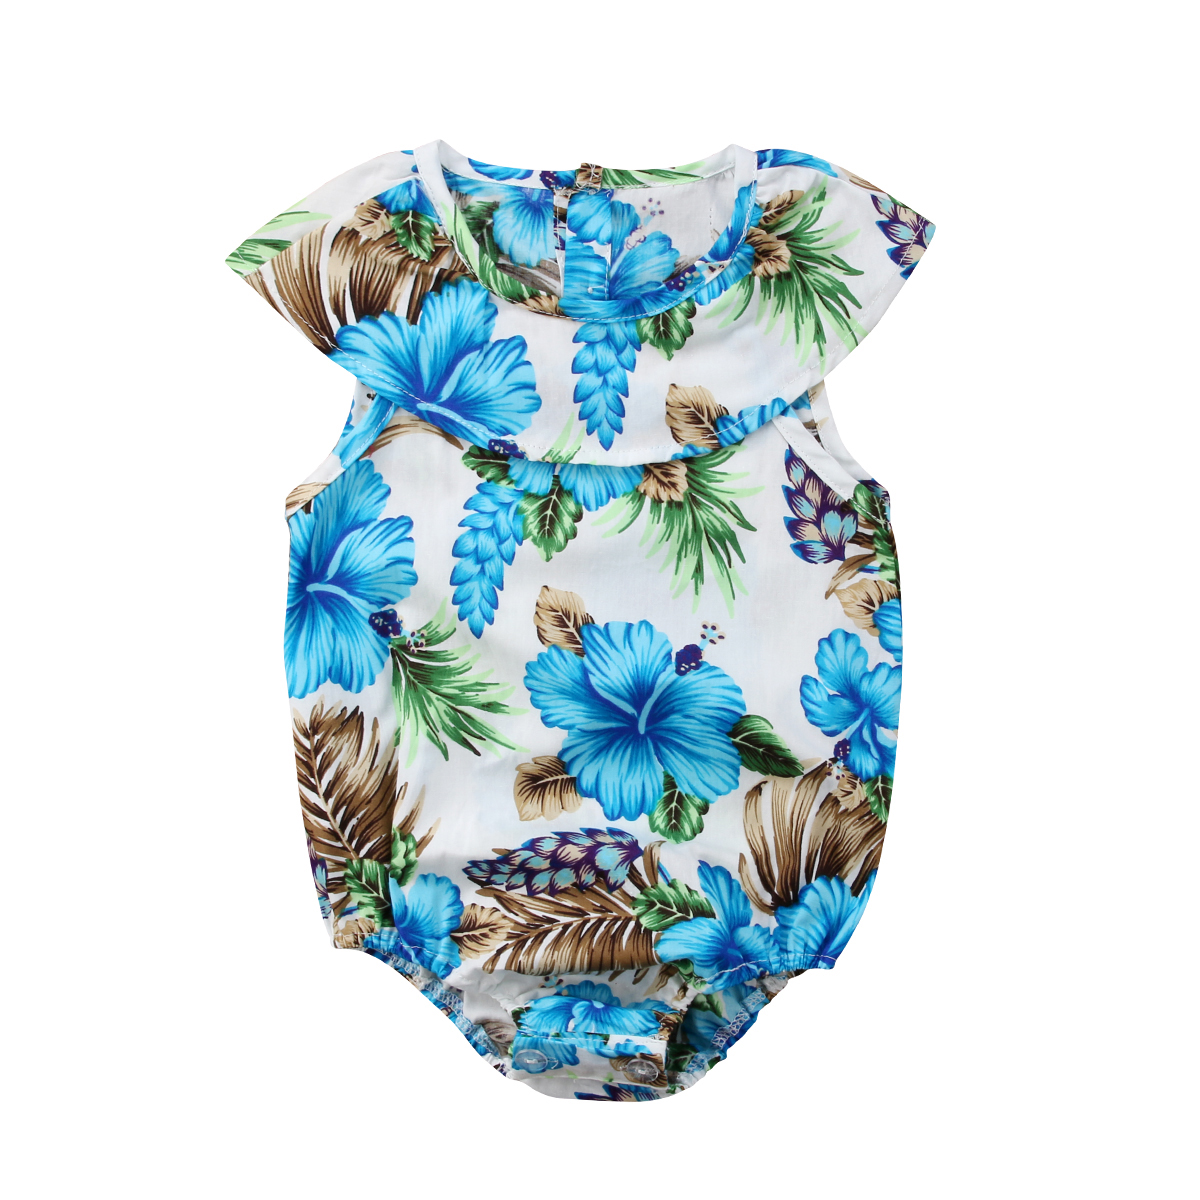 a43c3fe283a Summer Infant Kids Hawaii Clothing Baby Girls Toddler Floral Romper  Jumpsuit Clothes Outfits-in Rompers from Mother   Kids on Aliexpress.com